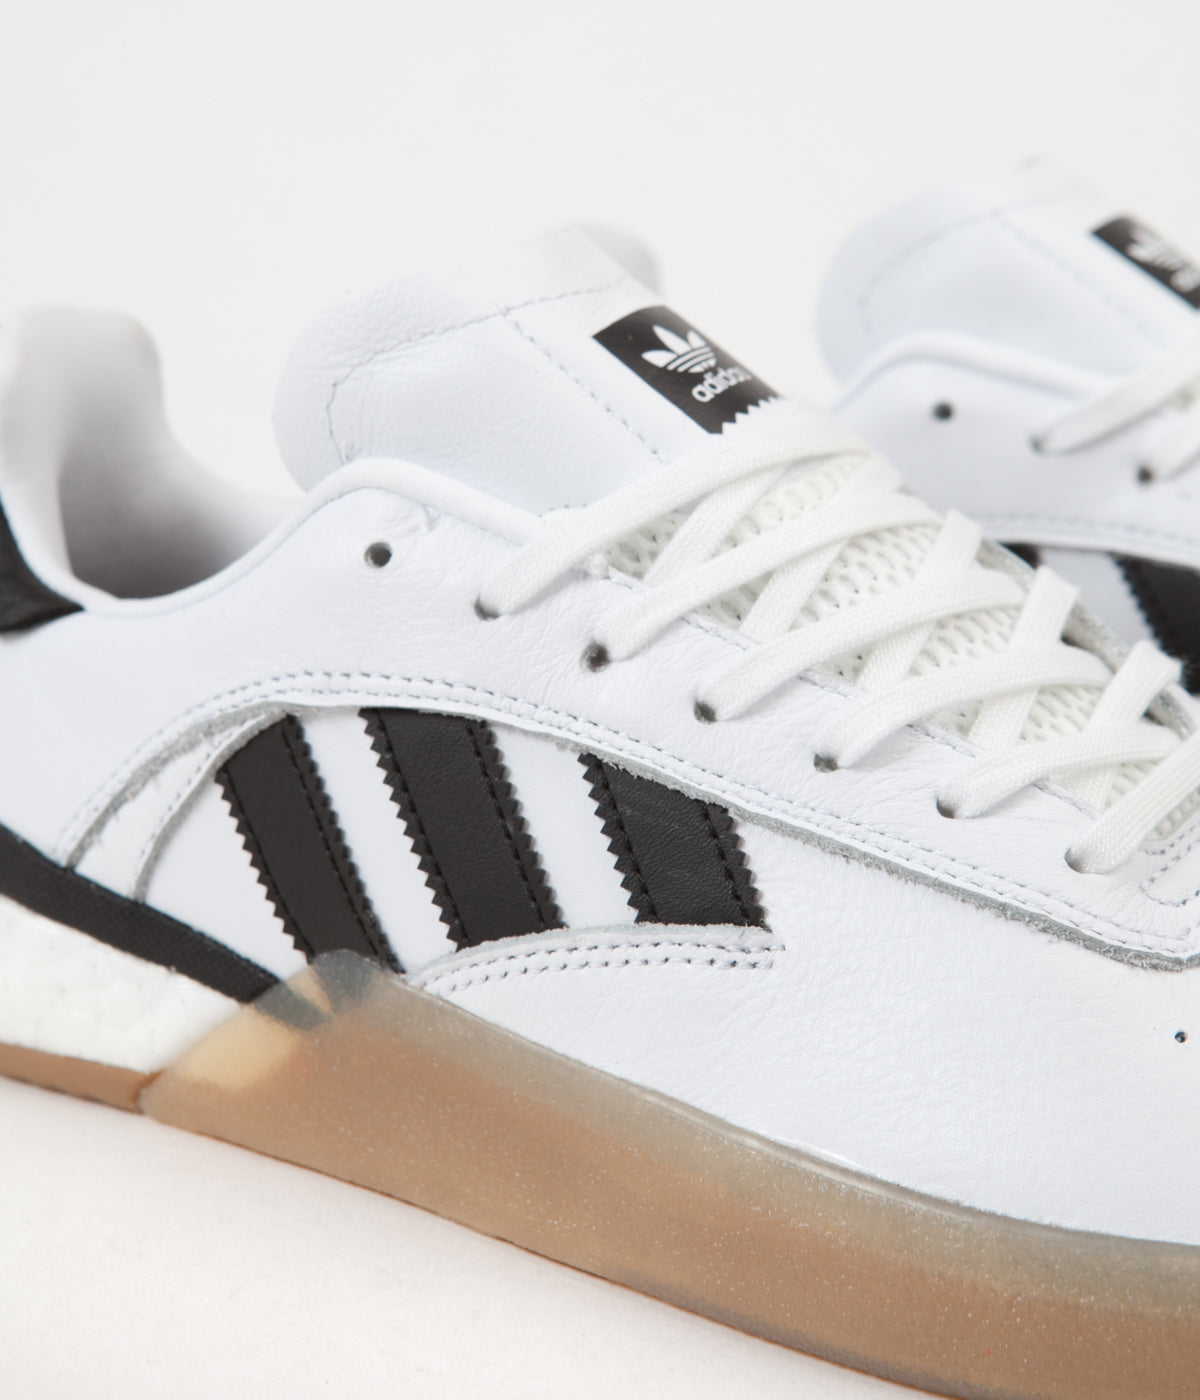 Adidas 3ST.004 Shoes - White / Core Black / Gum4